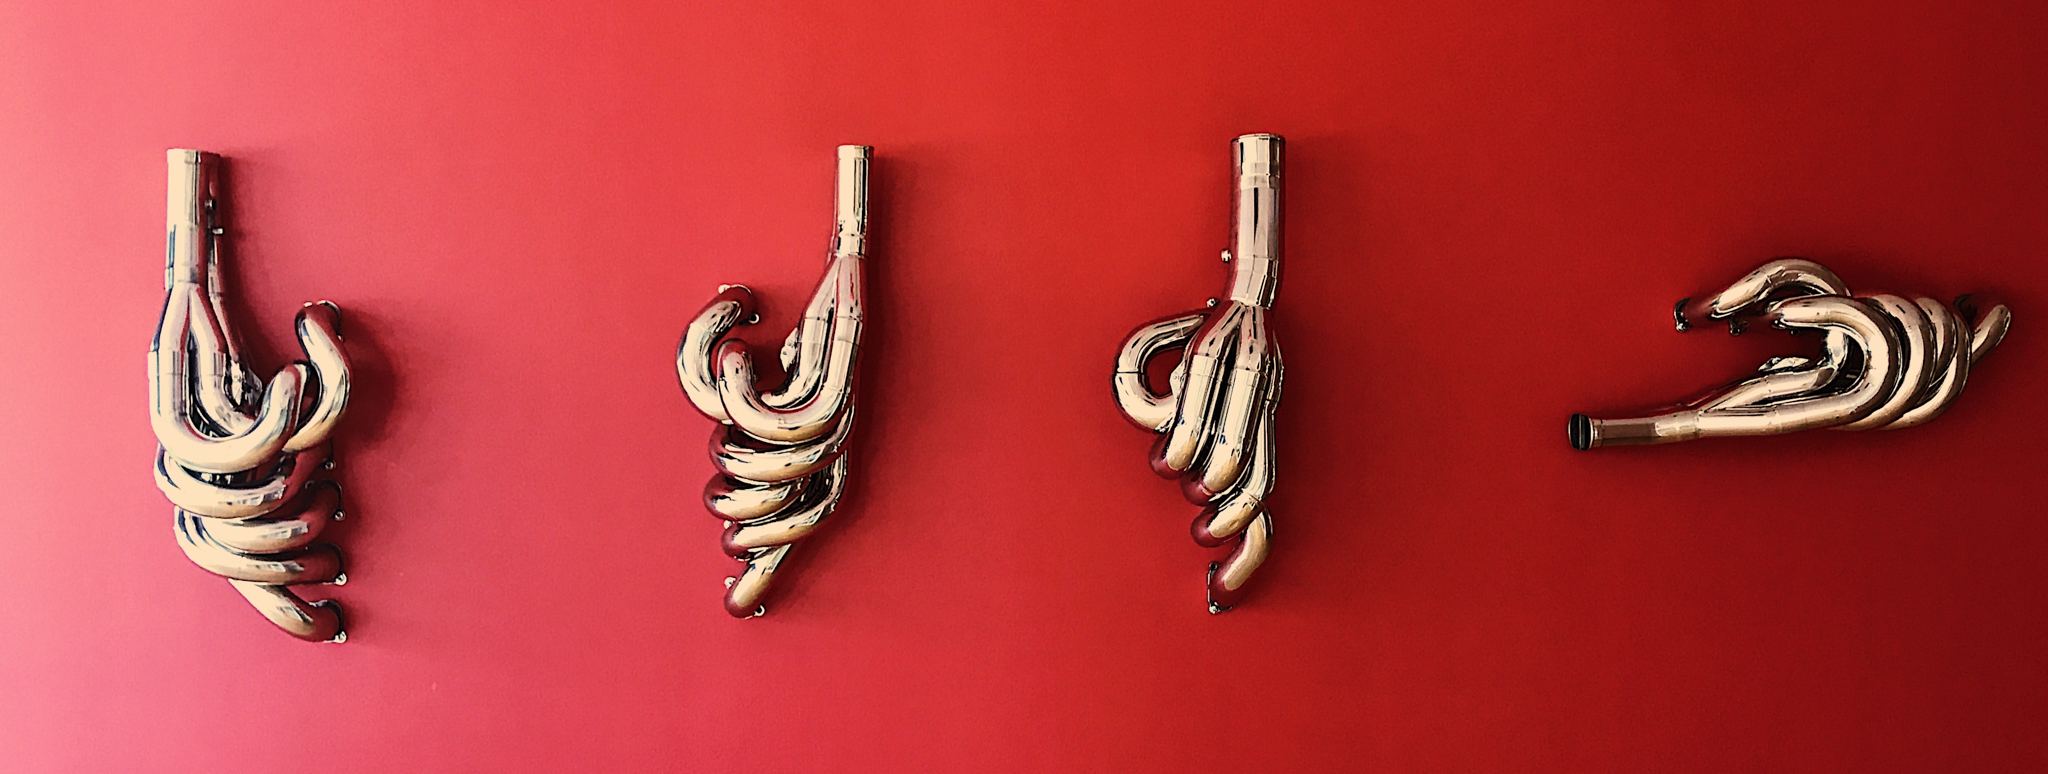 Why have art on your walls when you can have exhaust manifolds?